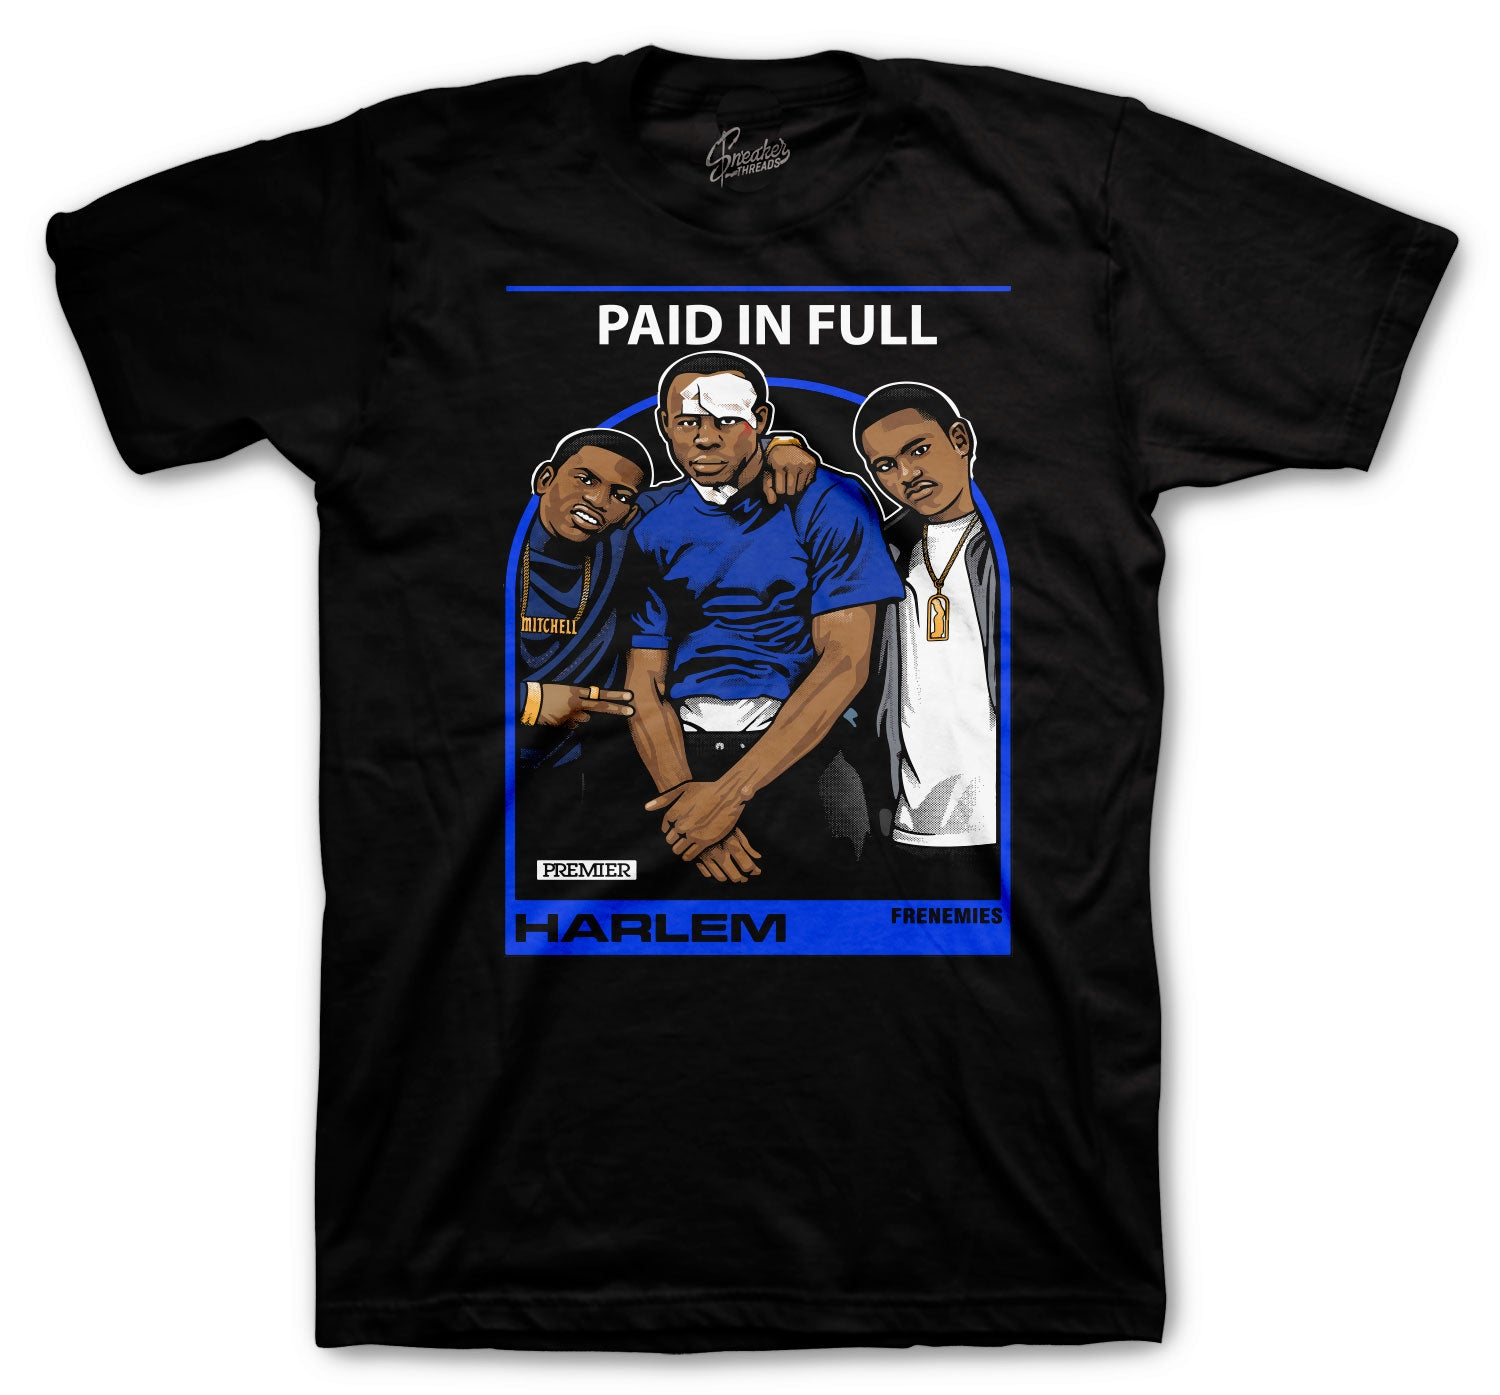 Jordan 14 Hyper Royal Frenemies Shirt